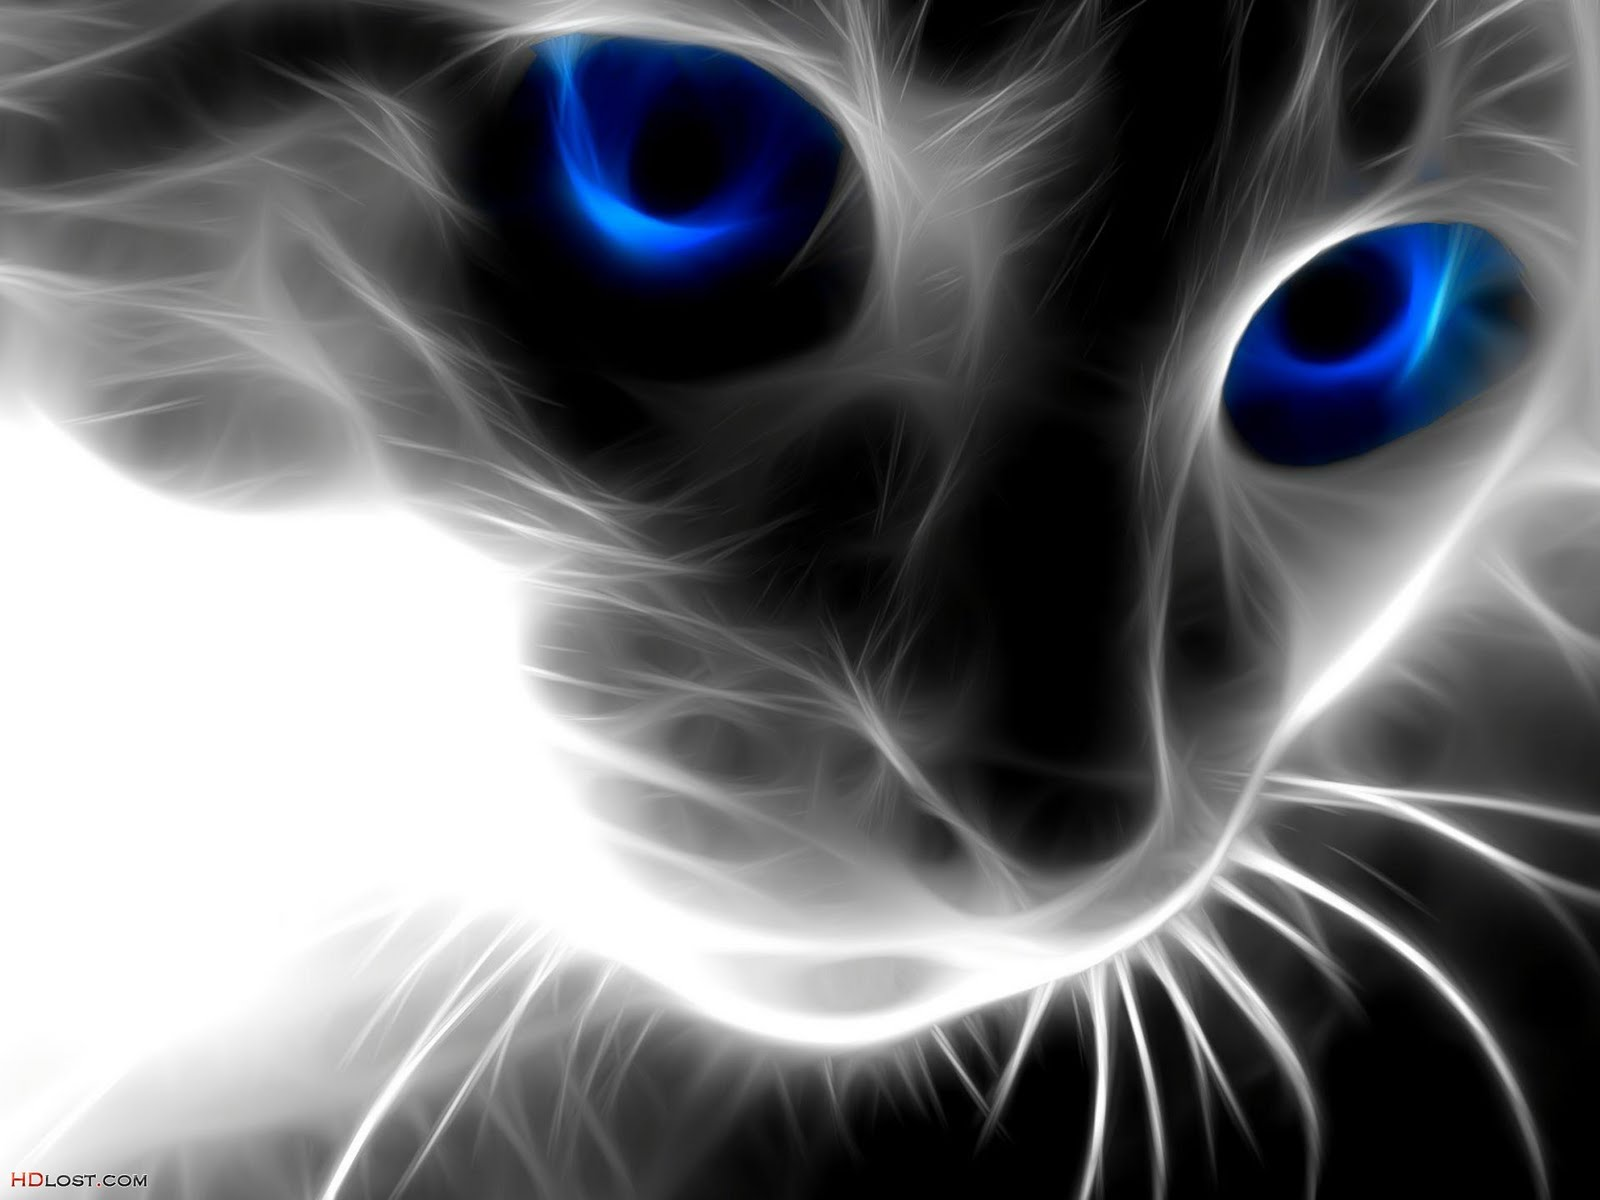 http://3.bp.blogspot.com/-6FGZQtTbGFw/TjRZS0Lei6I/AAAAAAAAAEw/2H89Eac-h-U/s1600/magic-cat-wallpaper-windows-7-1920x1440.jpg